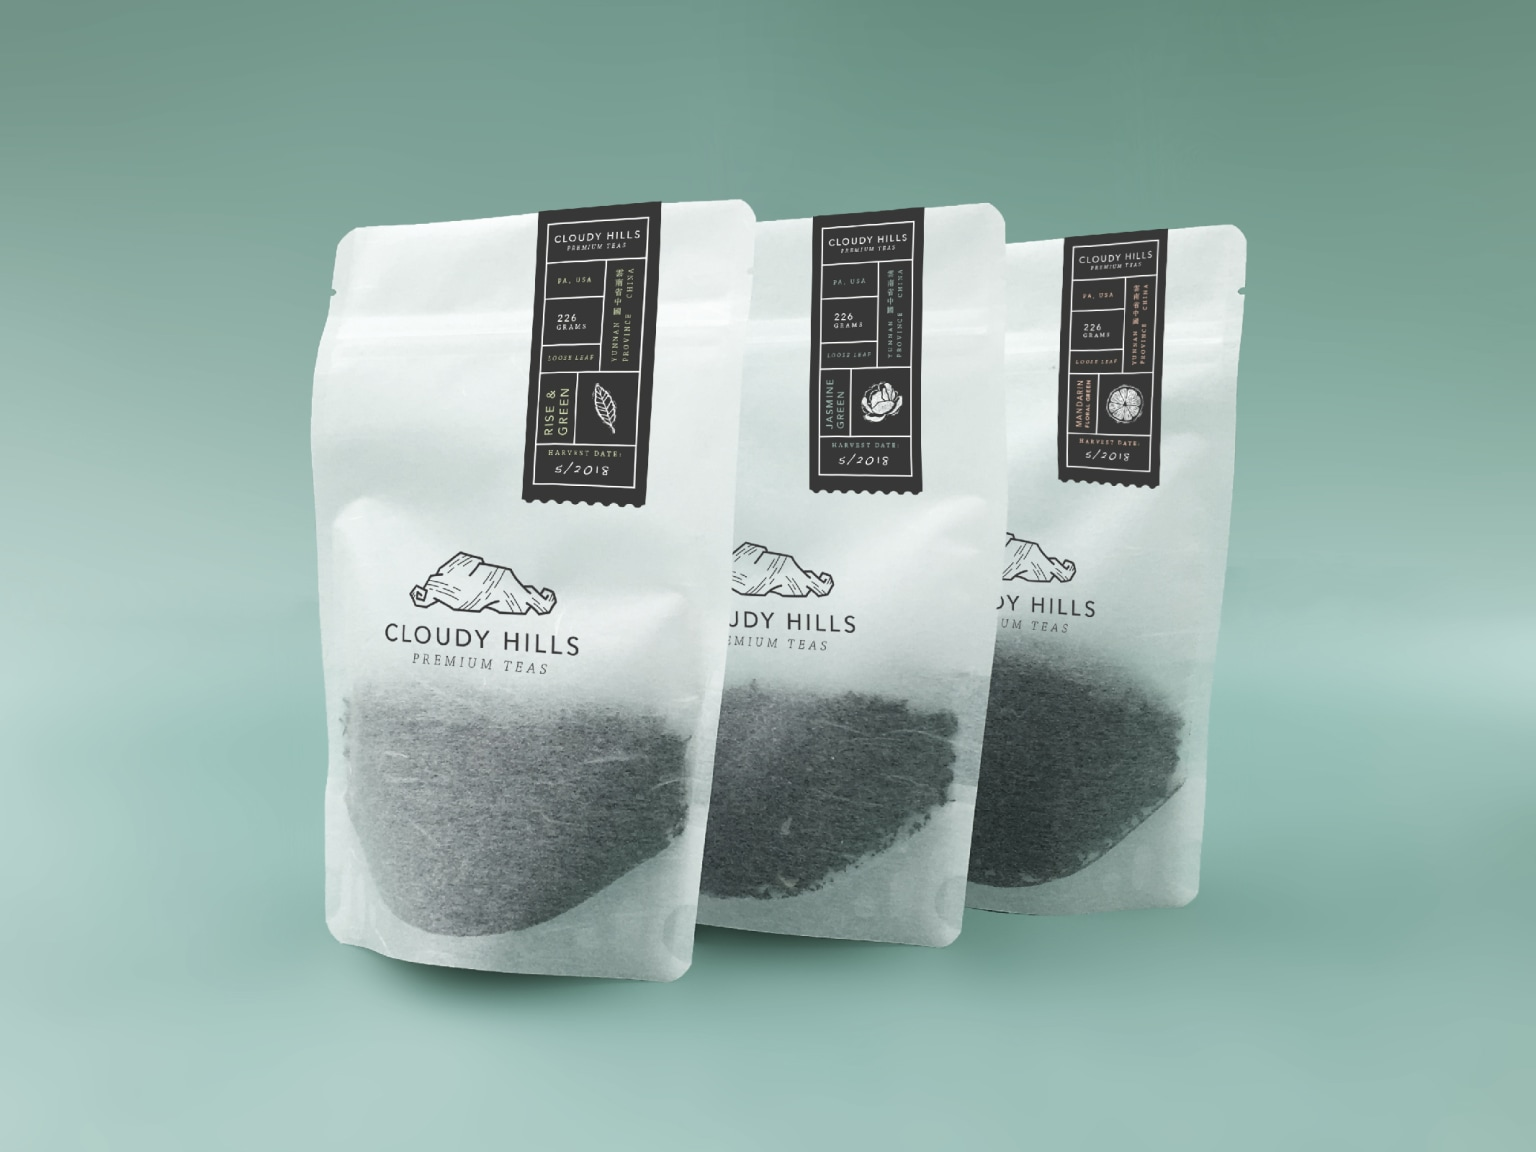 Cloudy Hills Tea Visual Identity, Packaging, and Brand Patterns